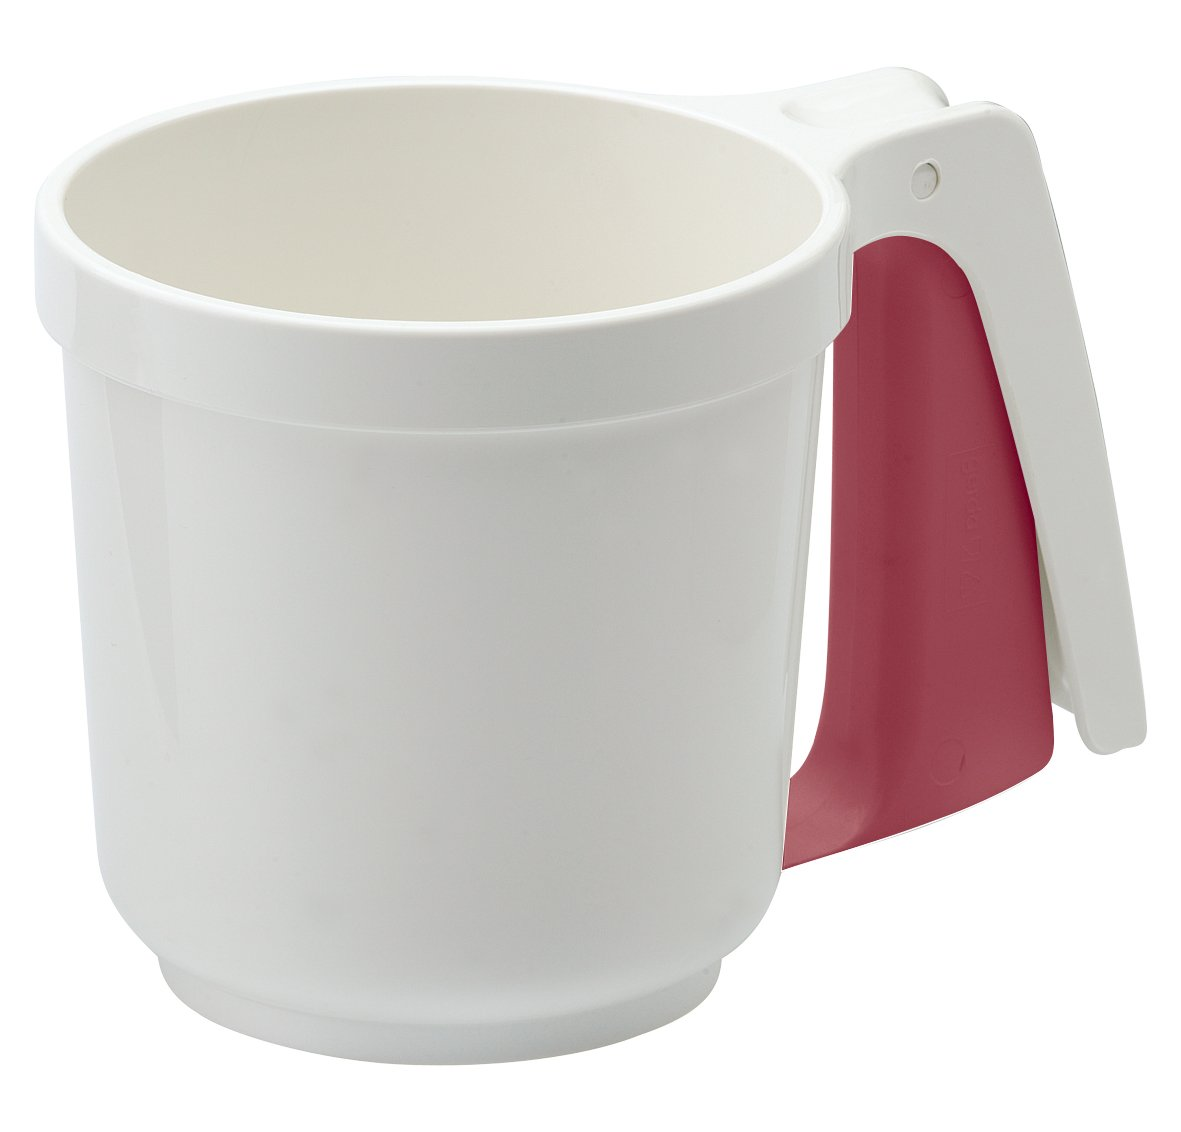 Westmark 32142270 Flour- And Icing Sifter, 6'' x 4'' x 4'', White/Red by Westmark